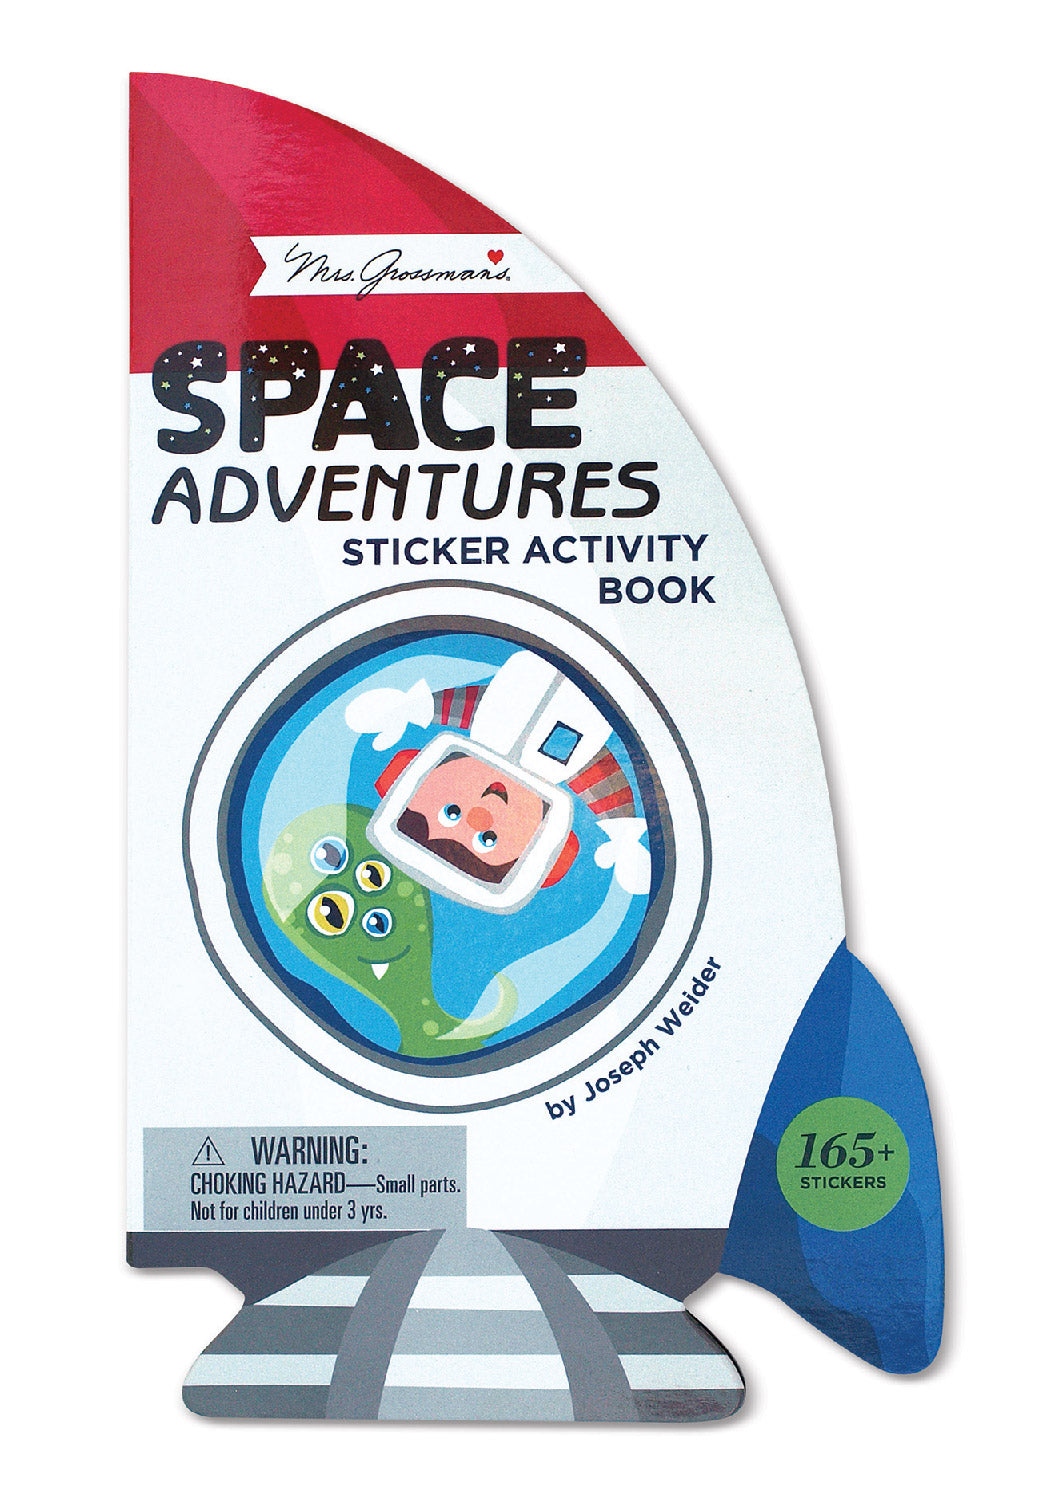 Space Adventures Sticker Activity Book - Mrs. Grossman's